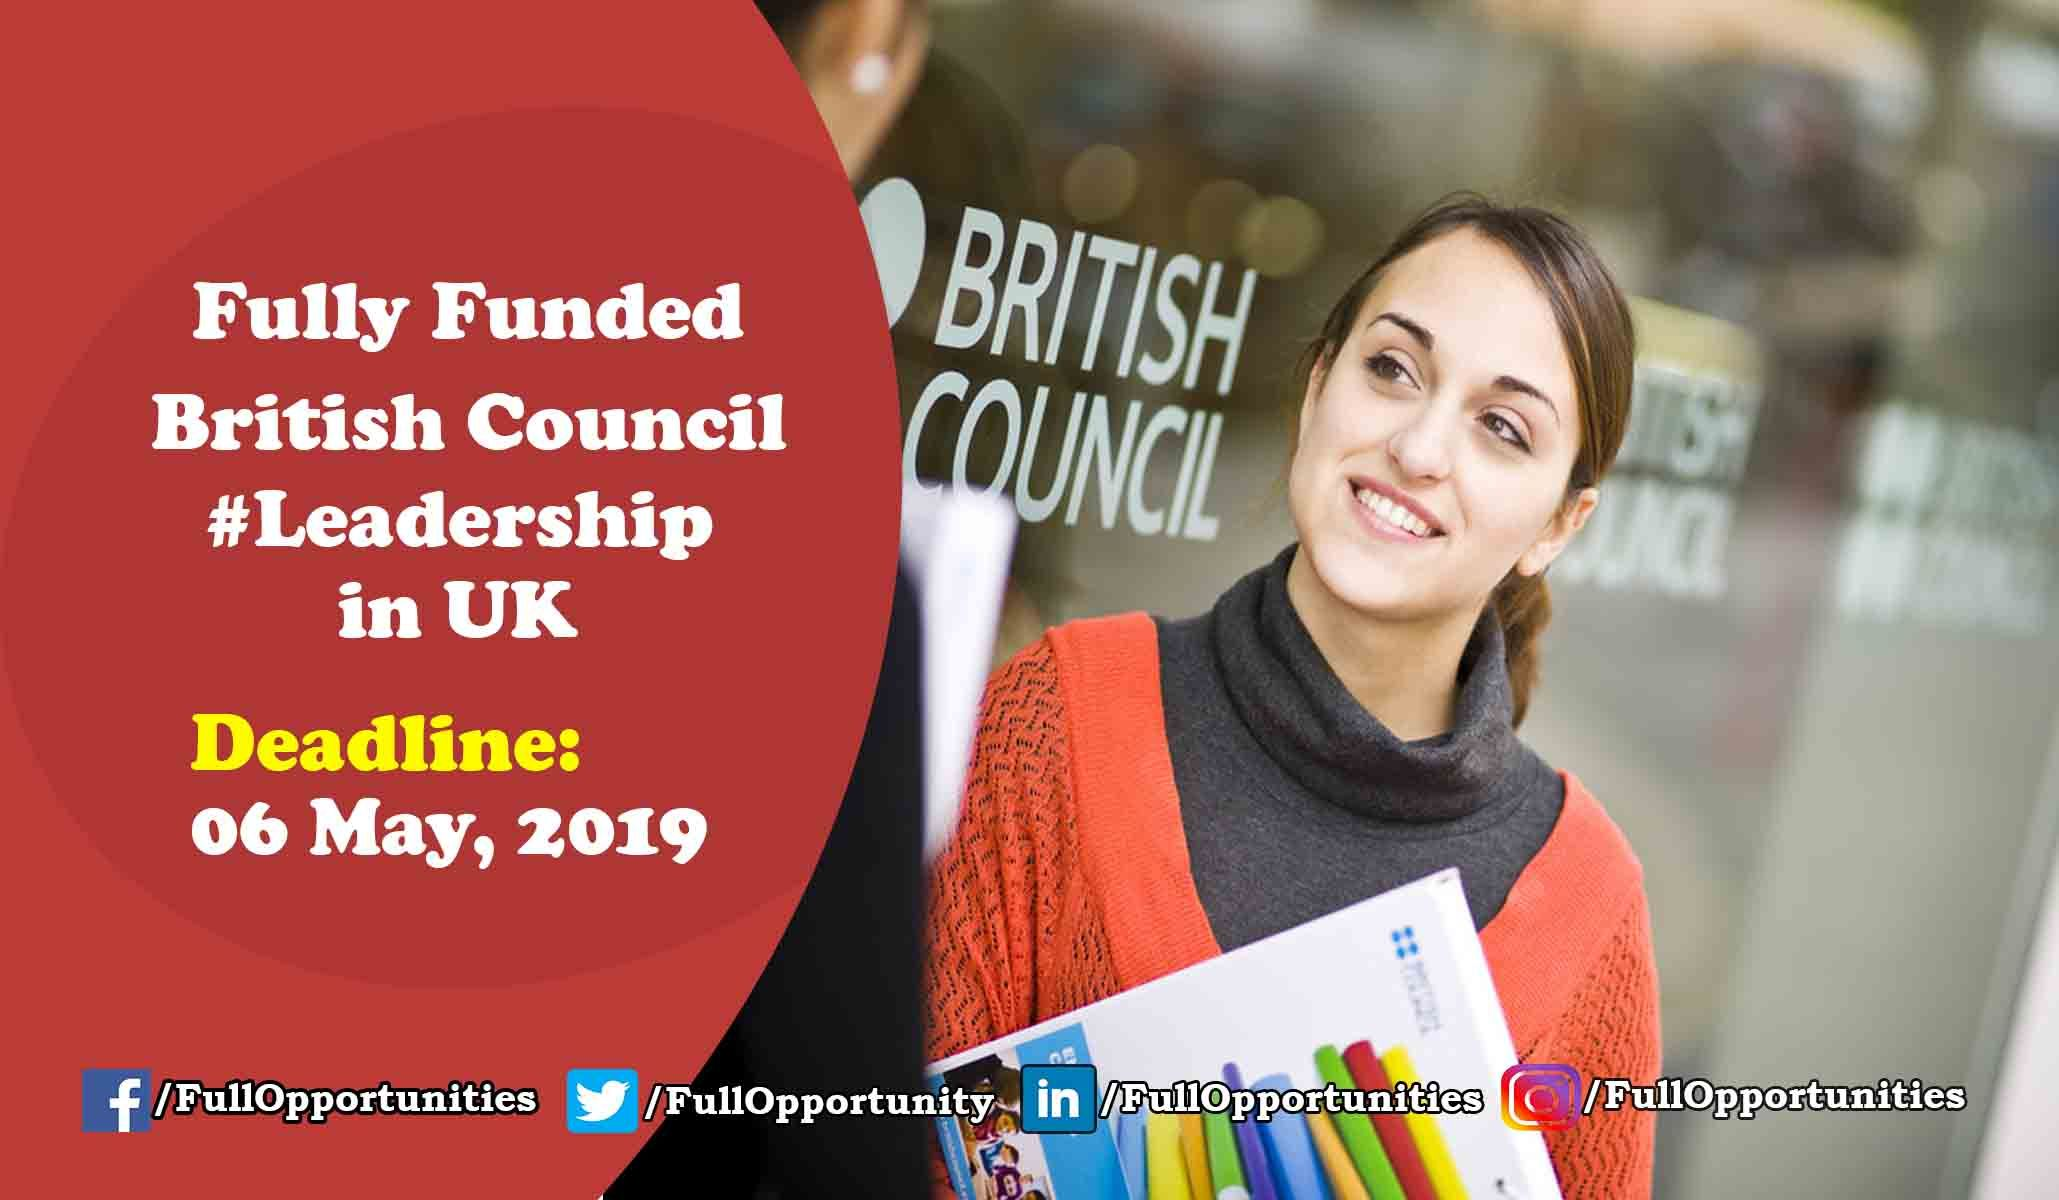 British council leadership program in uk fully funded